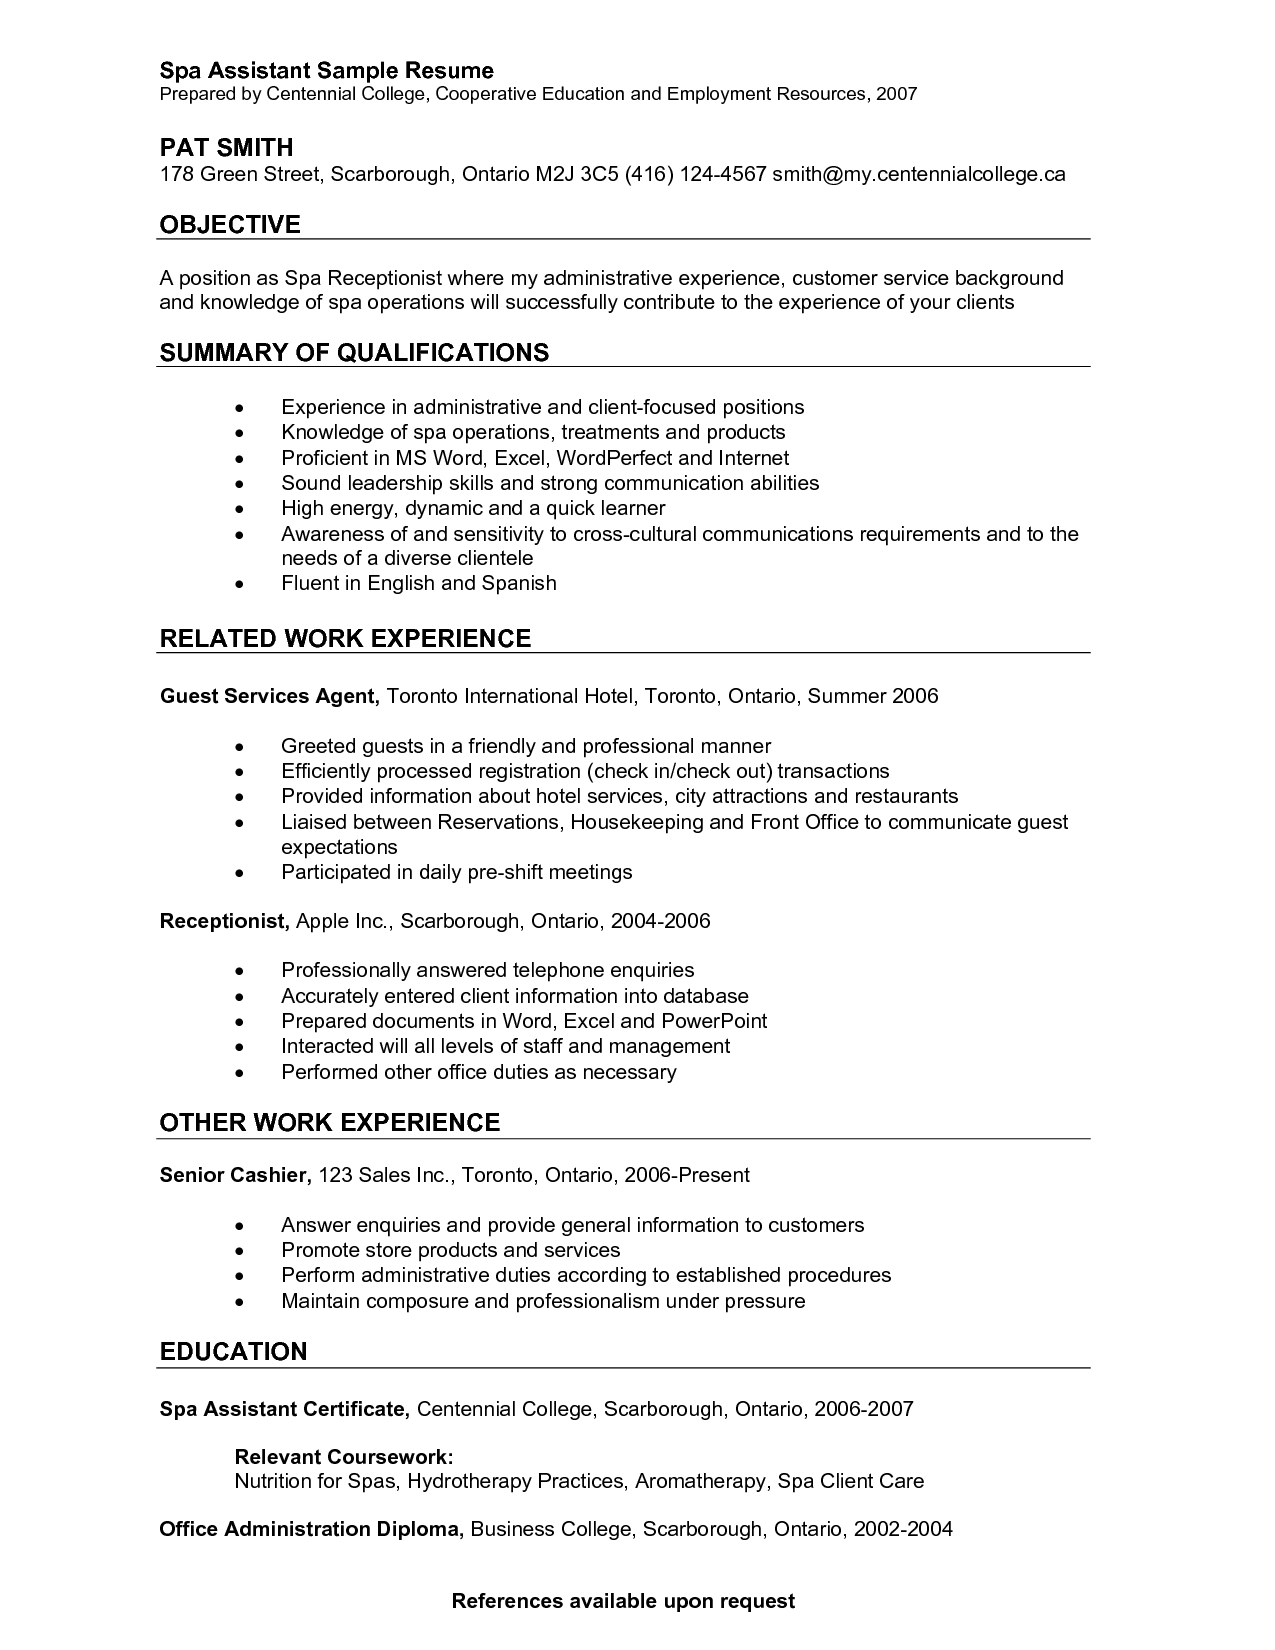 Medical Receptionist Resume Objective Samples Sample